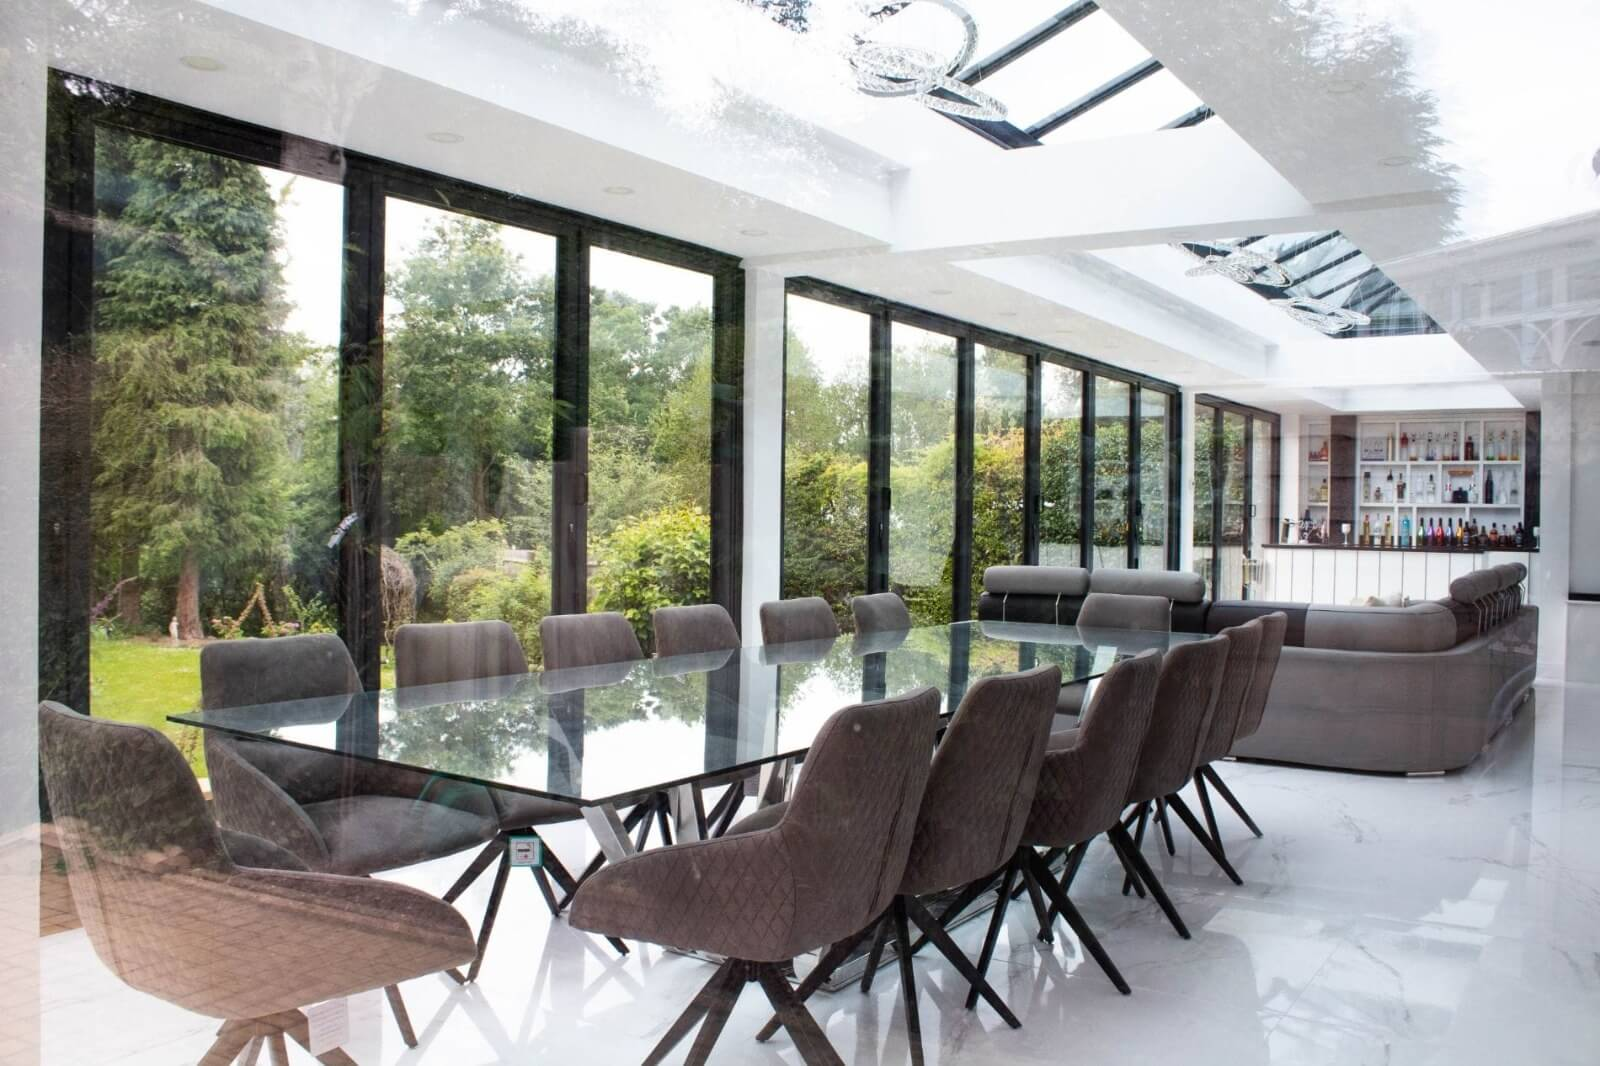 Can I Build A New Conservatory Or Renovate Without Planning Permission?